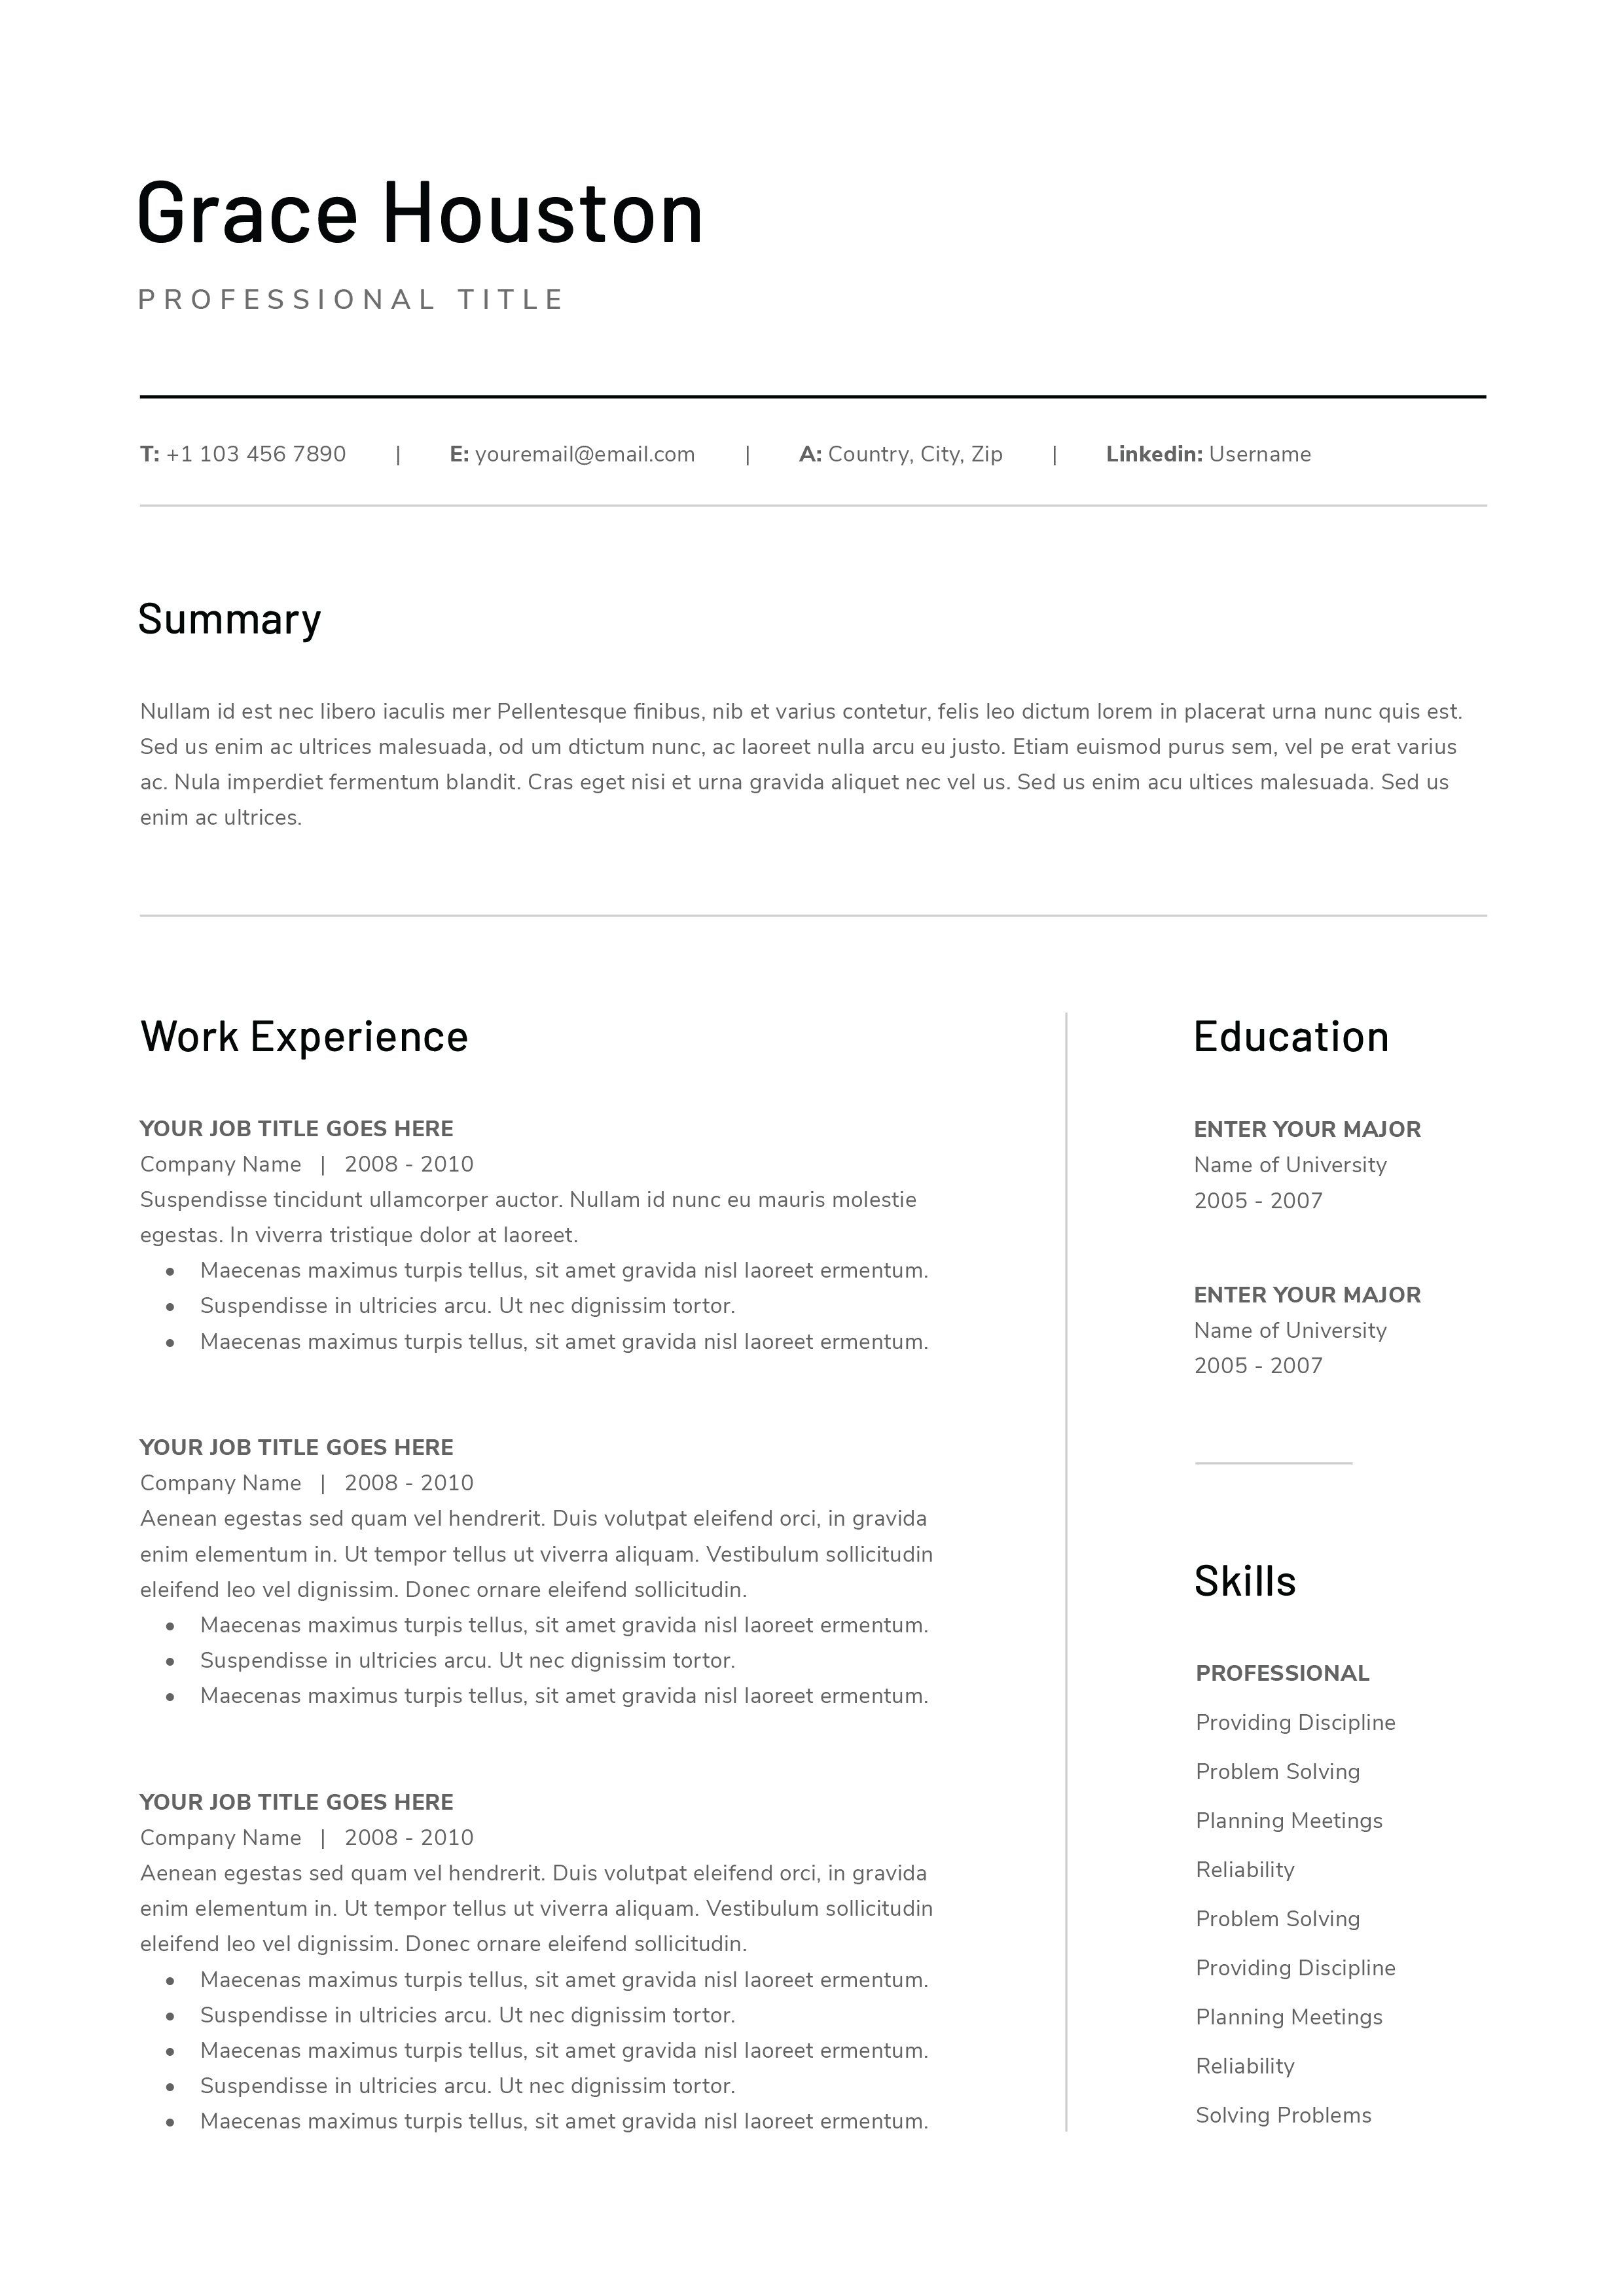 Free Resume With Cover Letter Templates With Images Cover